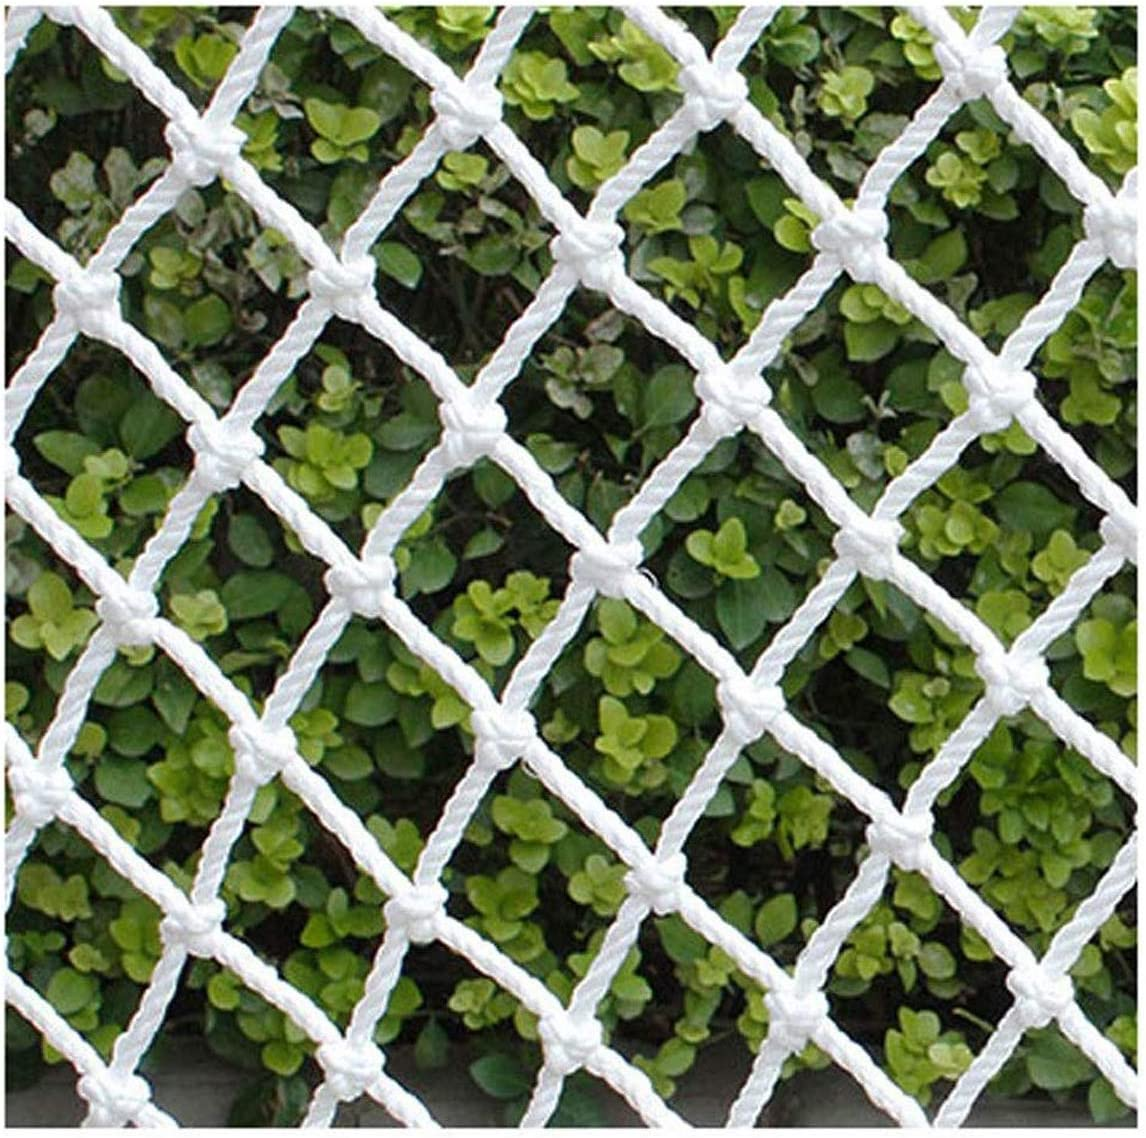 Climbing Rope Net Hanging Net Safety Net White Stair Playground Cargo Trailer Net Toy Pet Safety Railing Childrens Terrace Balcony Protection Net Size : 1 * 1M Ceiling Decoration Net